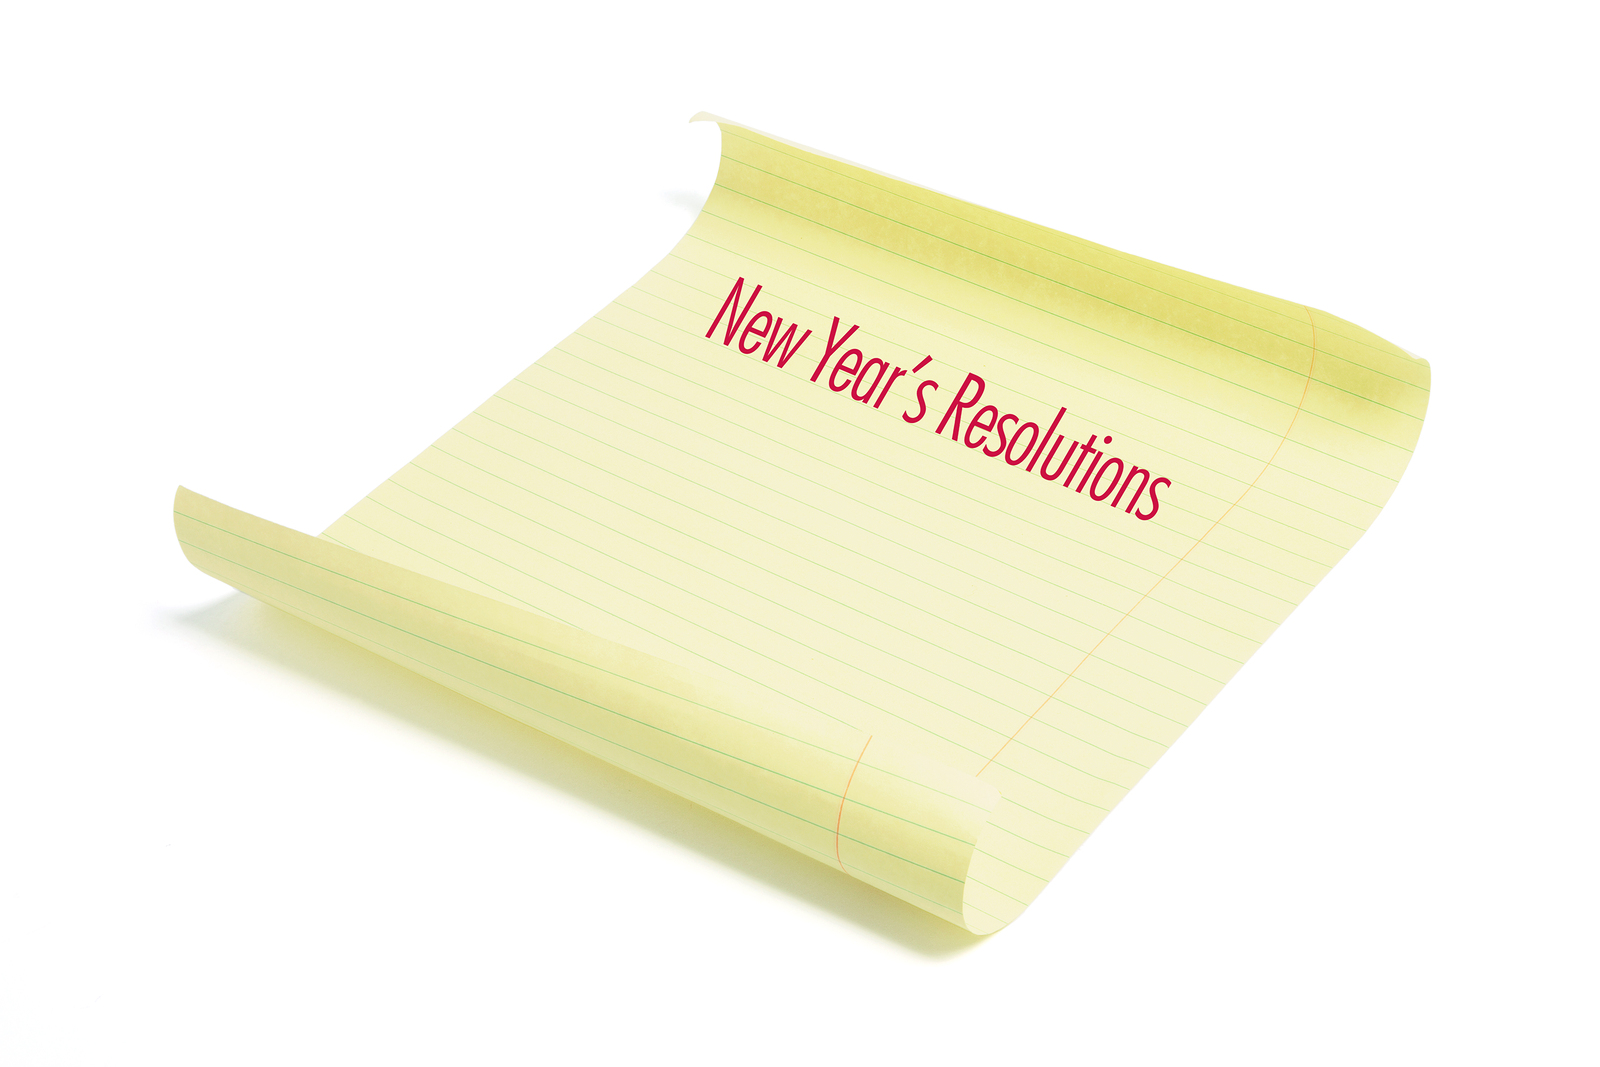 new year's resolutions for the workplace